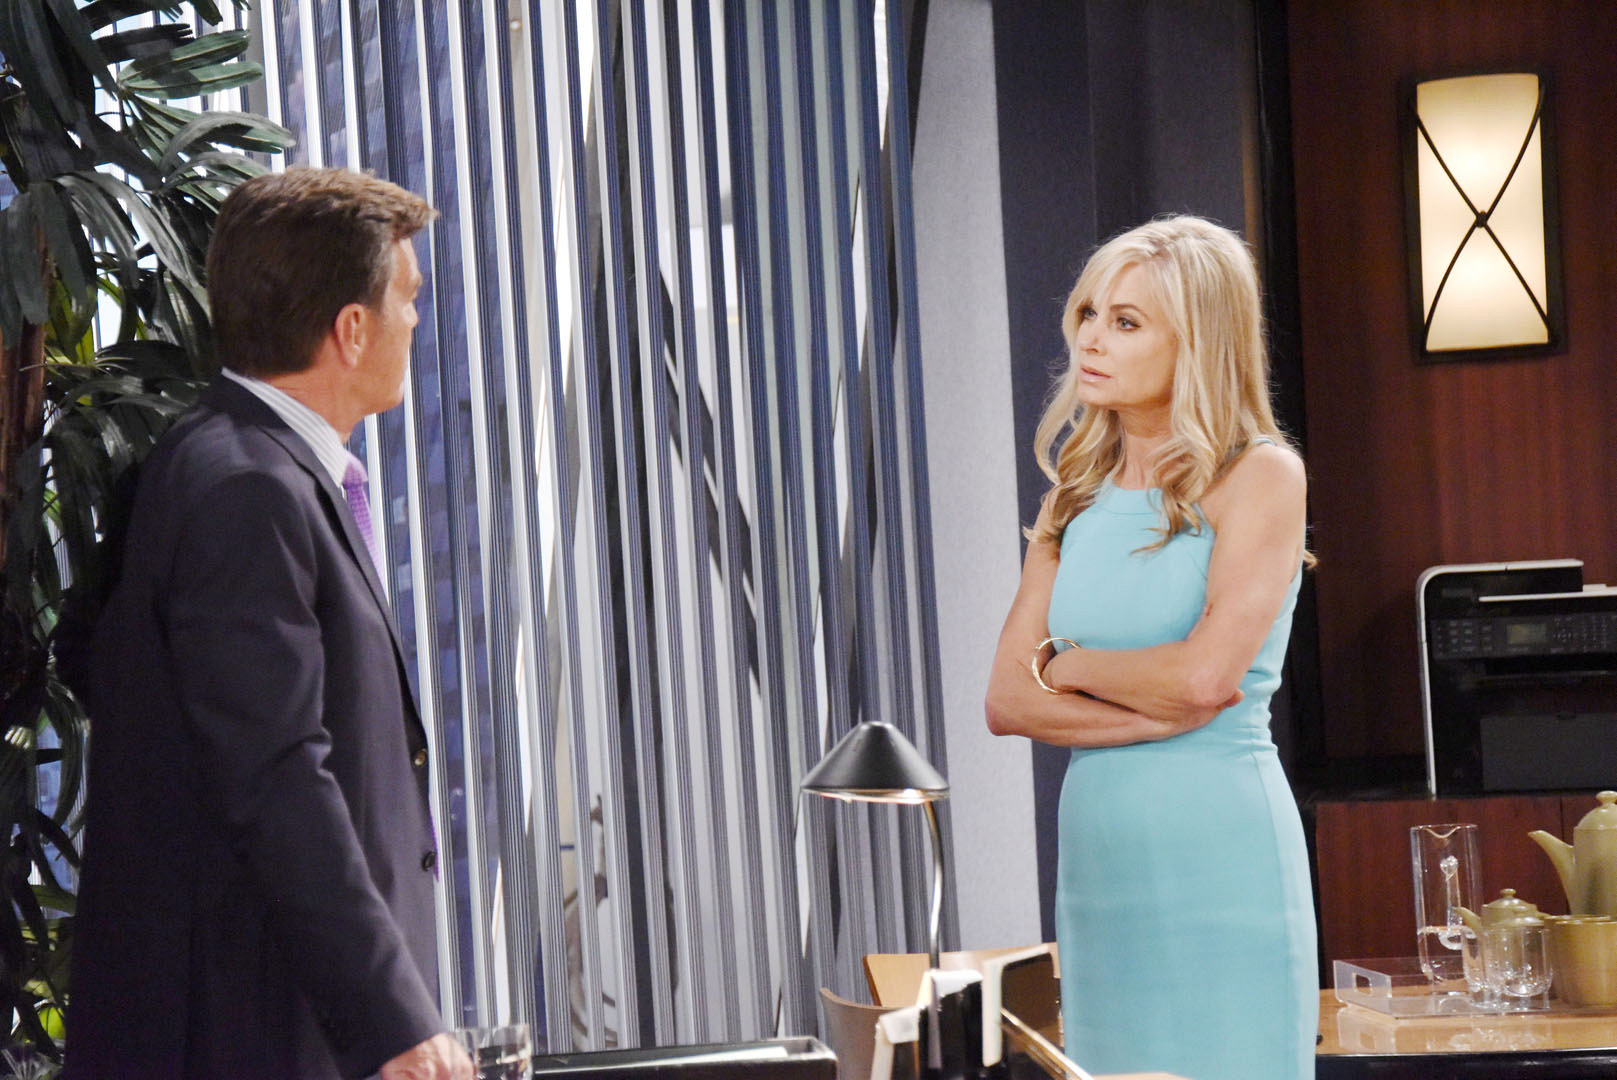 Ashley vows to protect Dina.